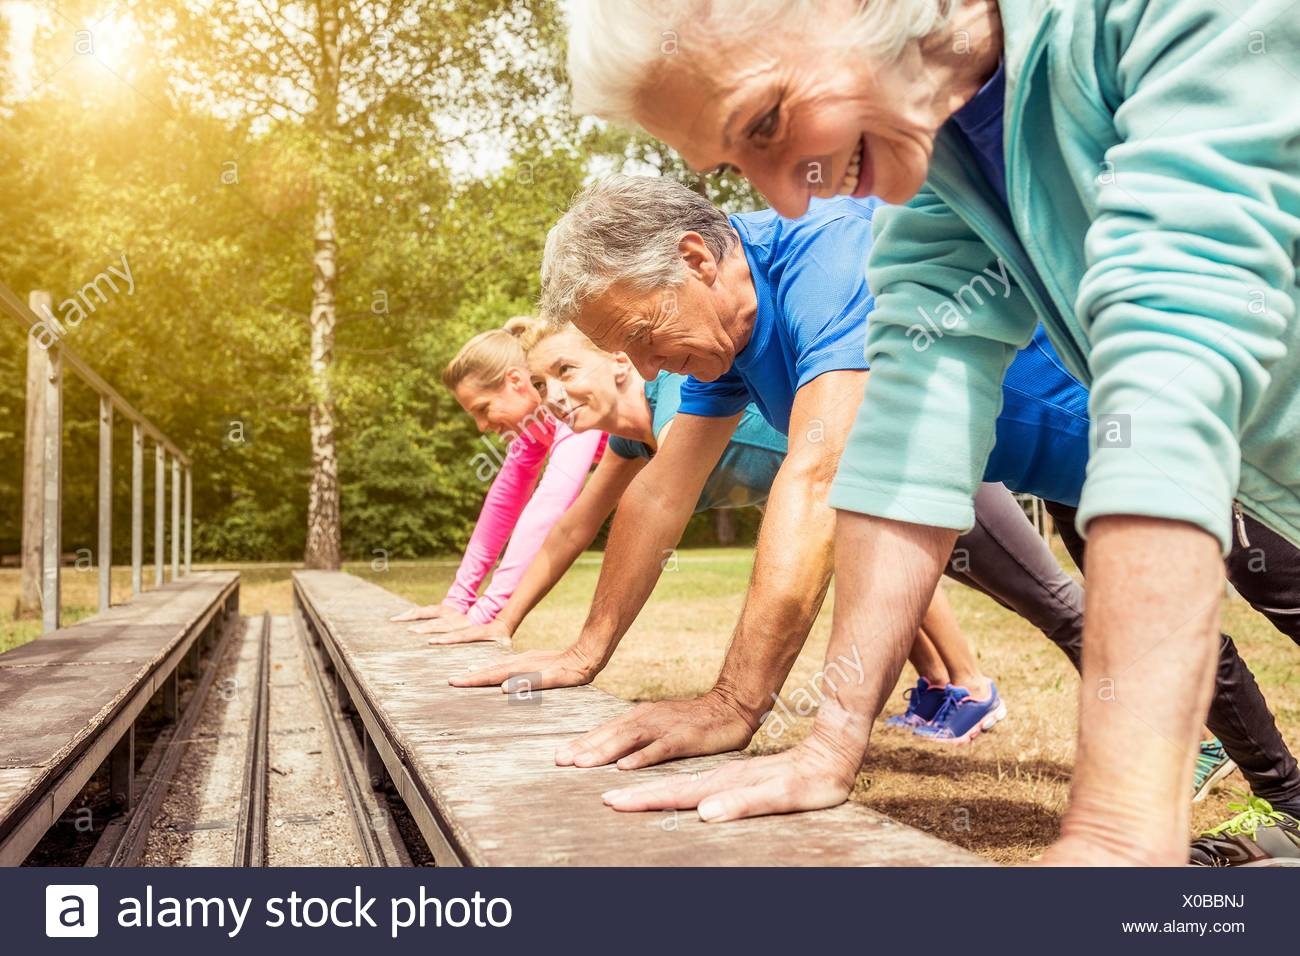 Group of adults exercising outdoors - Stock Image